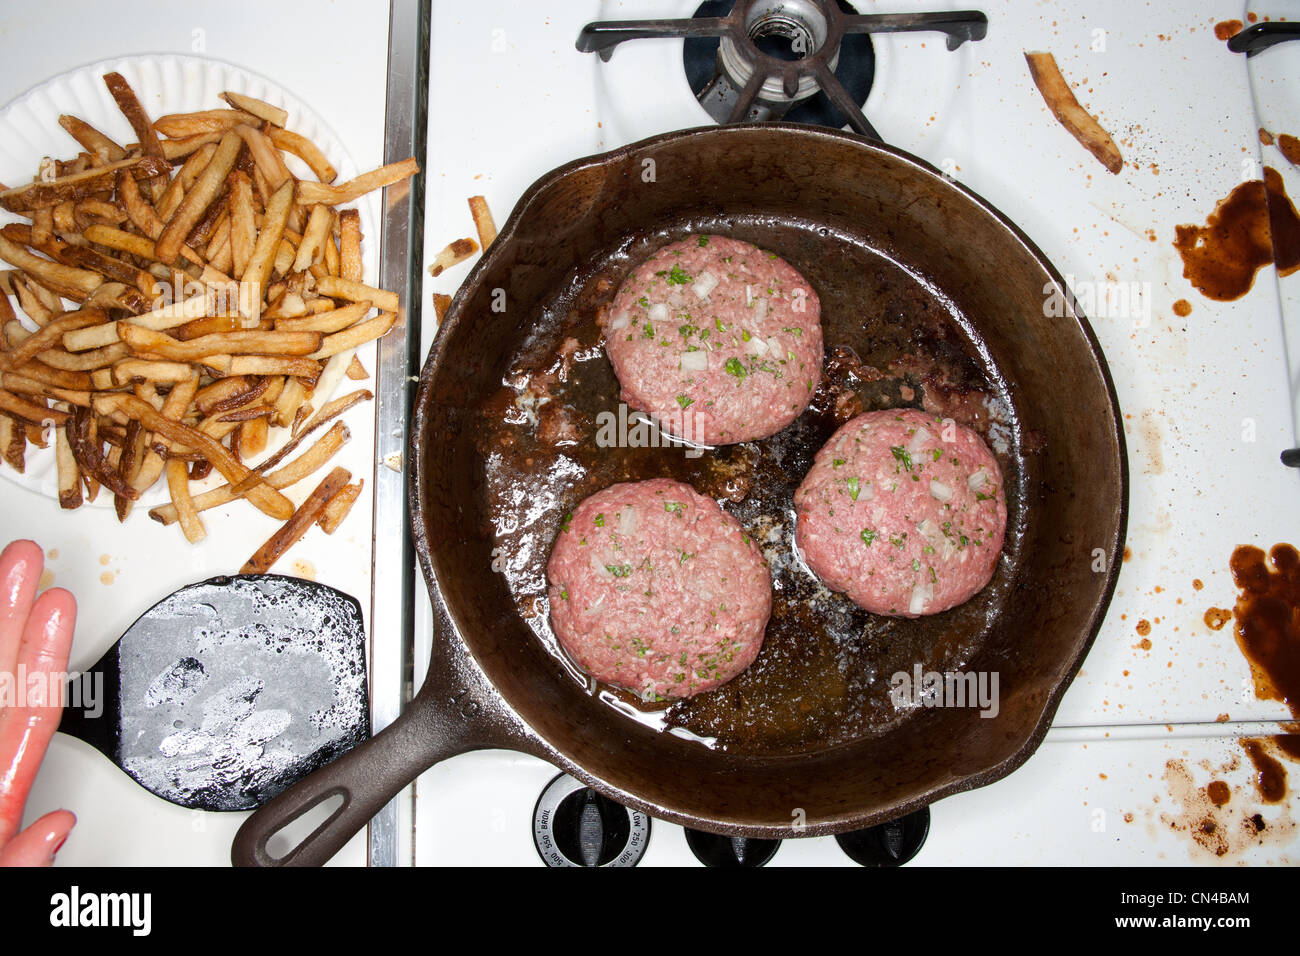 Burgers cooking in a frying pan - Stock Image